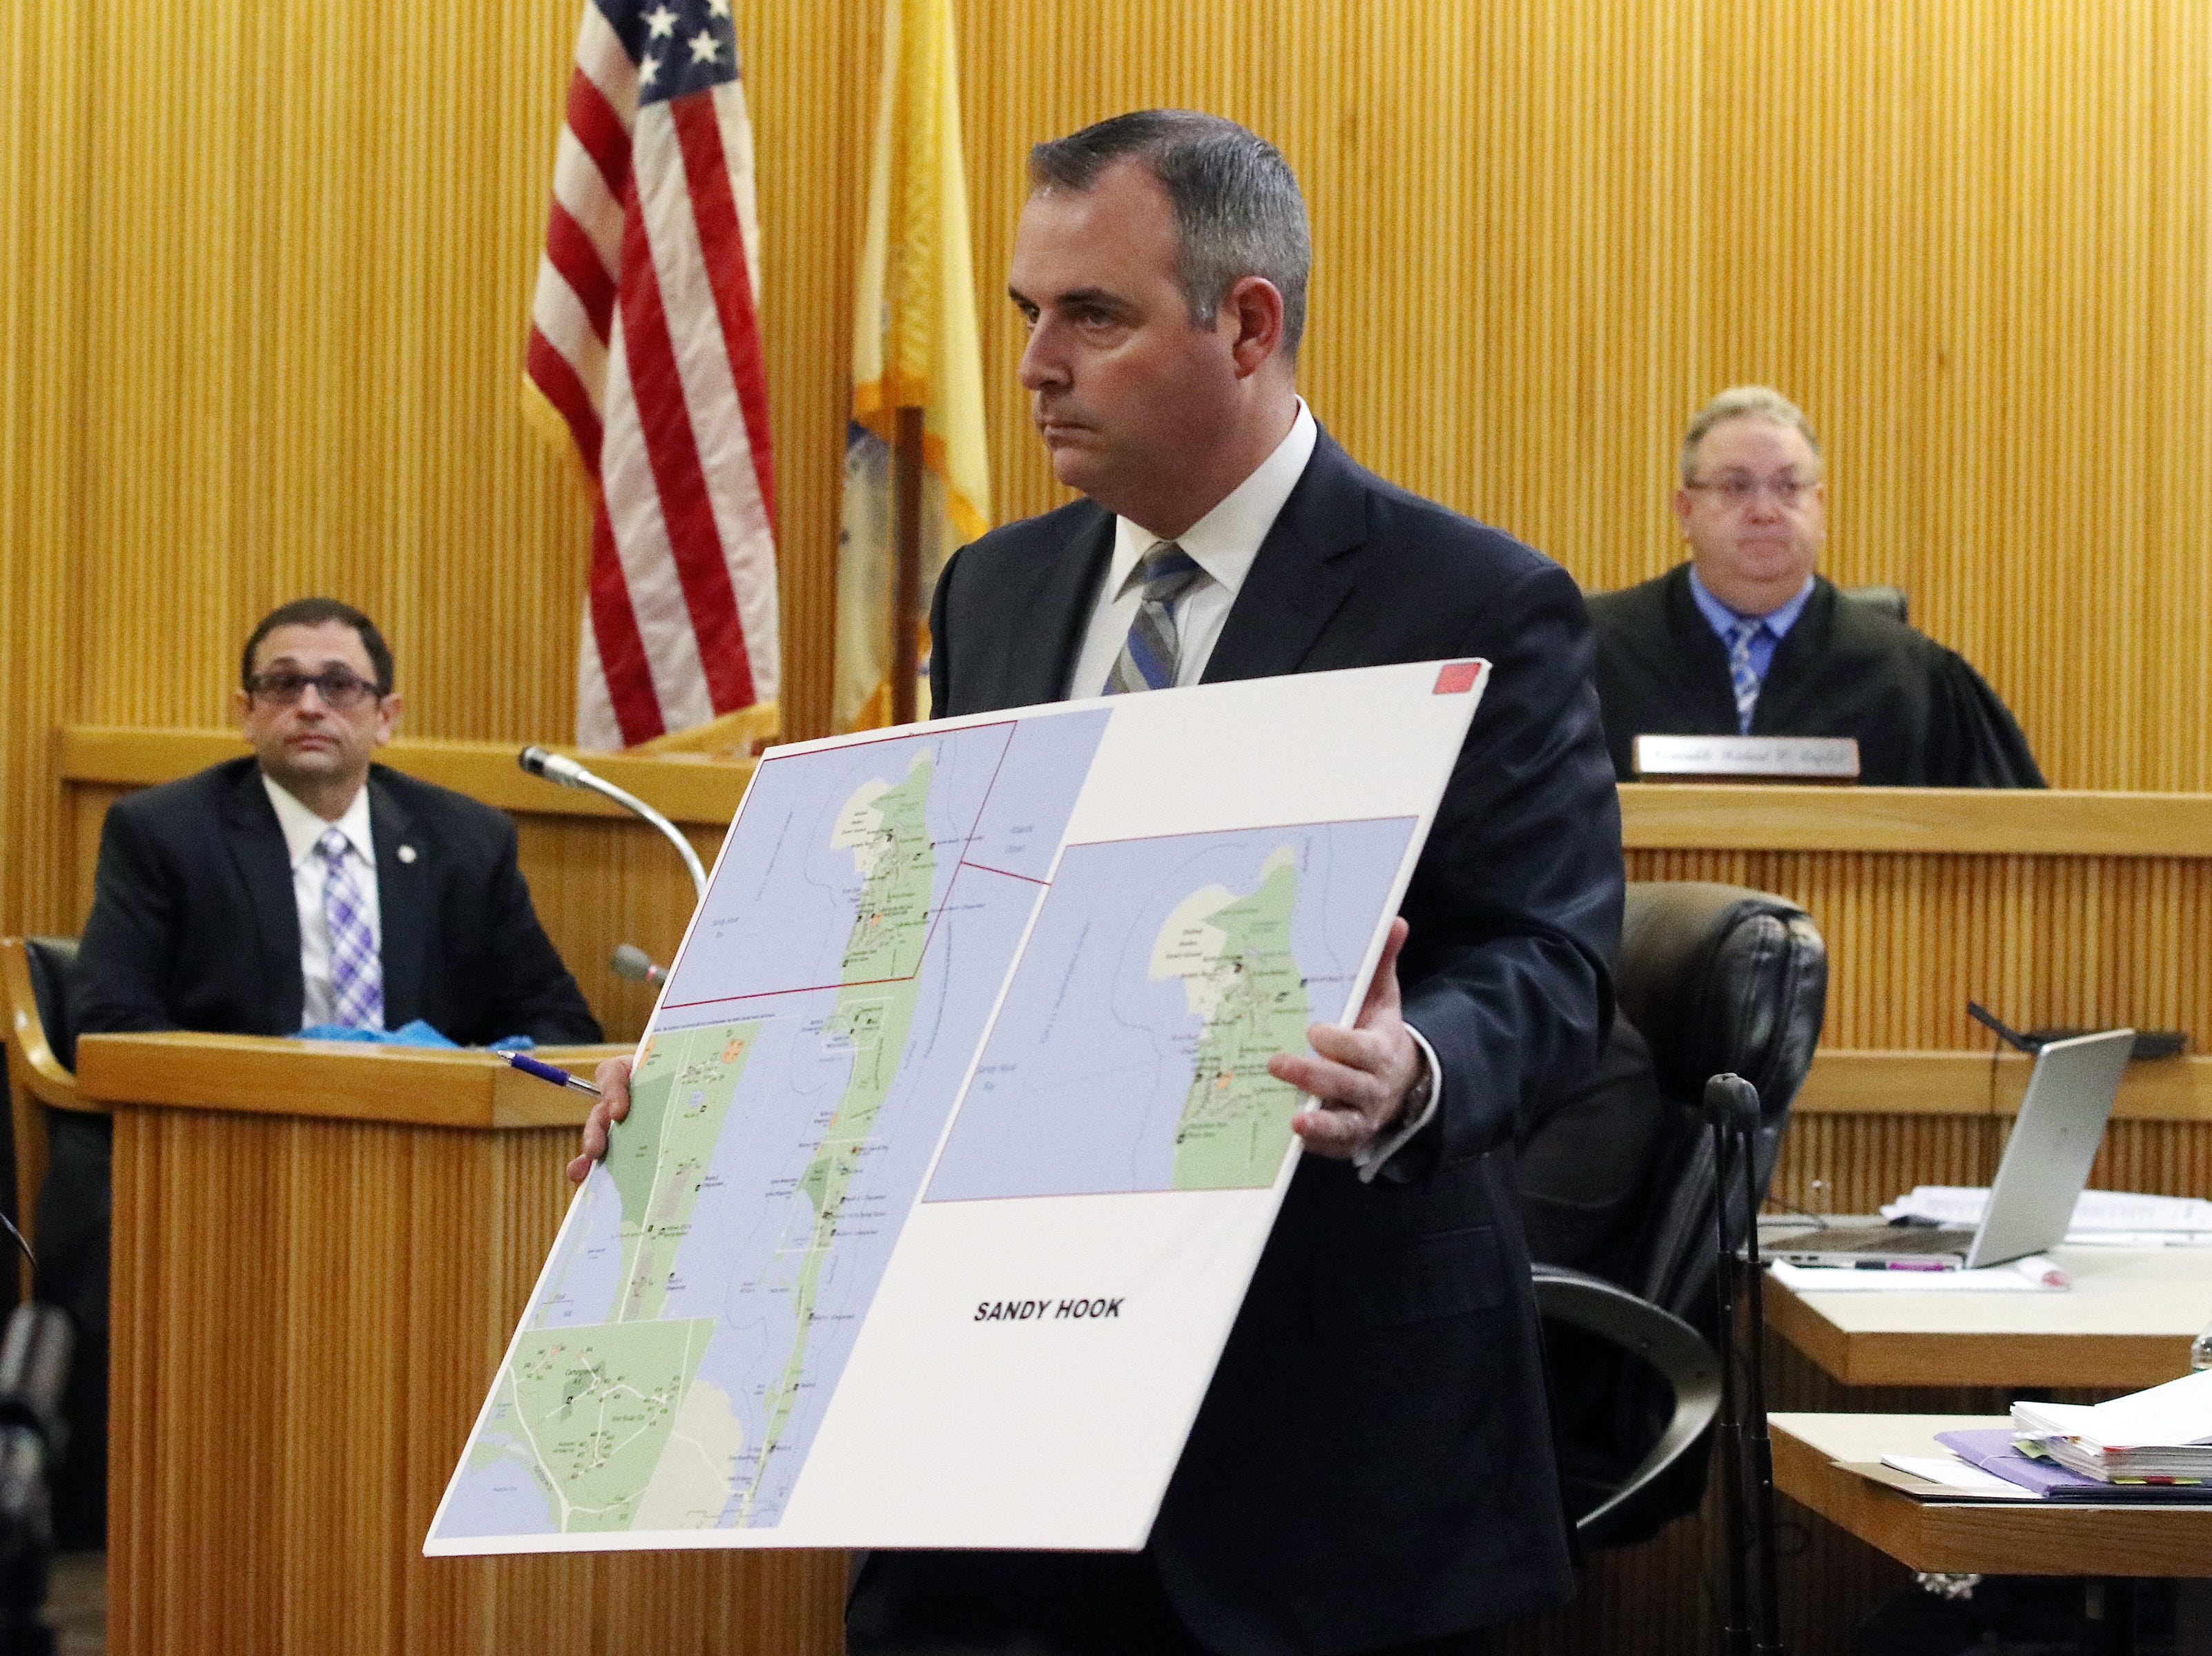 Christopher Decker, assistant Monmouth County prosecutor, shows a map of Sandy Hook to the jury as Detective Nicholas Cattelona of the Monmouth County Prosecutor's Office, testifies during the trial of Liam McAtasney, who is charged with the murder of former high school classmate, Sarah Stern, before Superior Court Judge Richard W. English at the Monmouth County Courthouse in Freehold, NJ Wednesday, February 6, 2019.